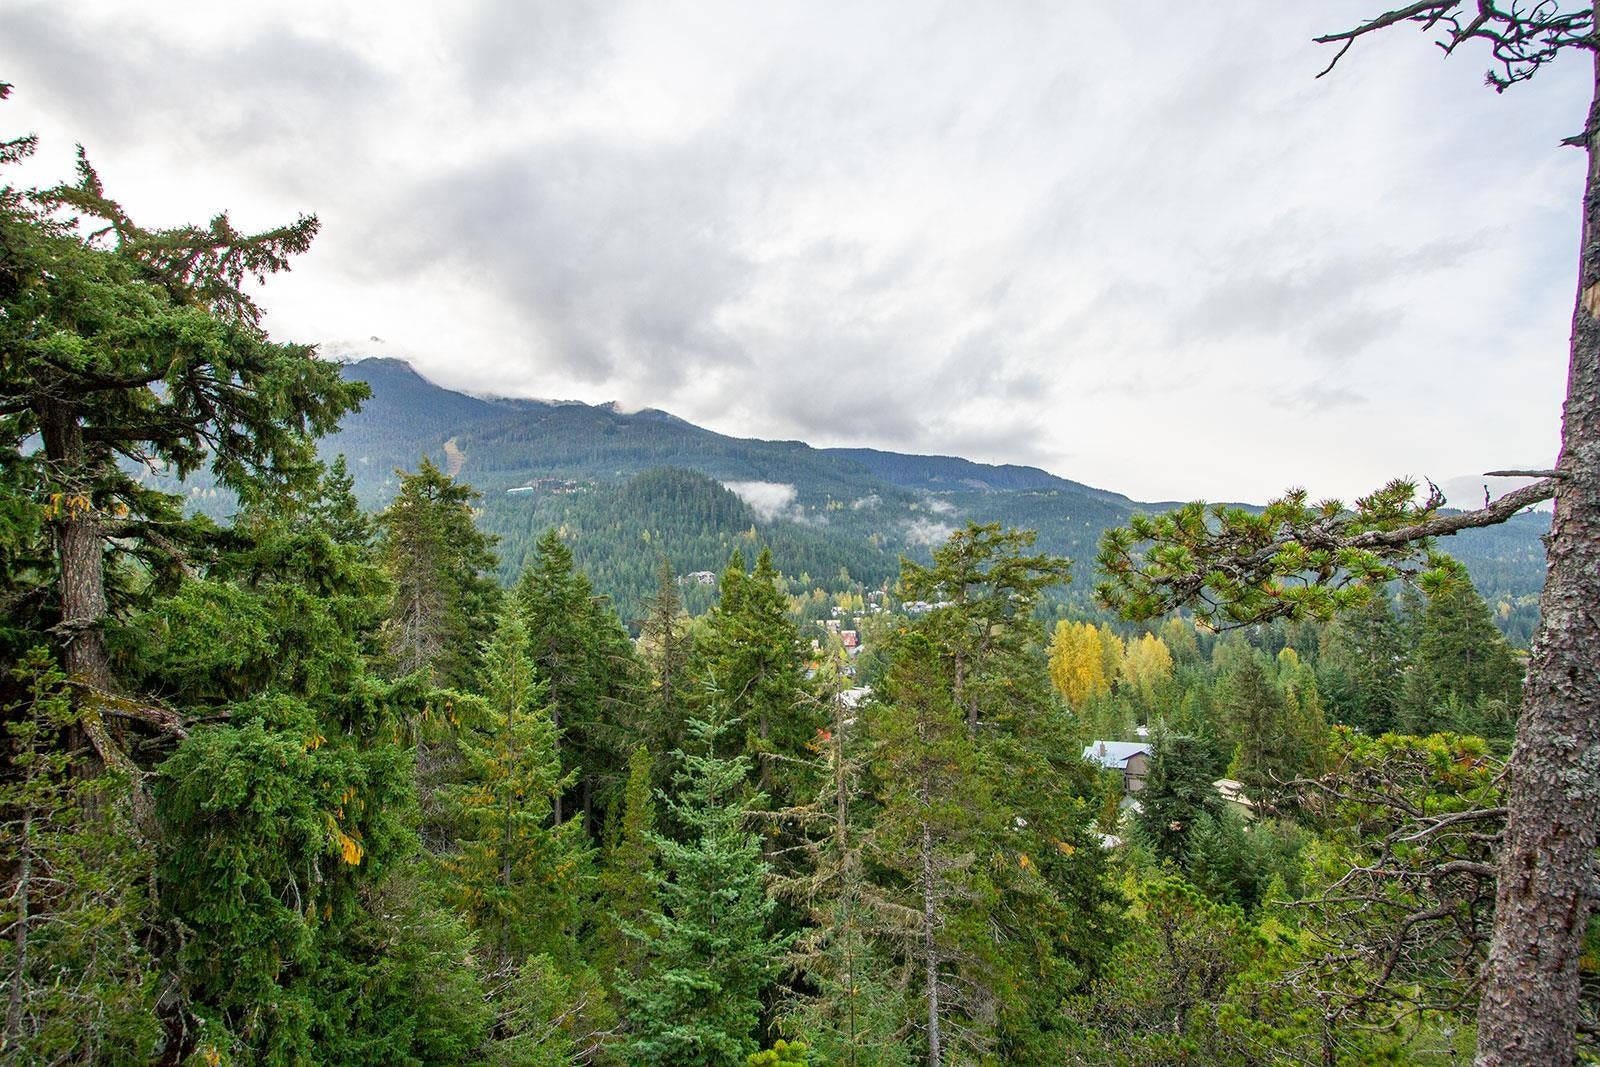 24 2020 WATSON WAY - Whistler Creek Townhouse for sale, 1 Bedroom (R2623238)